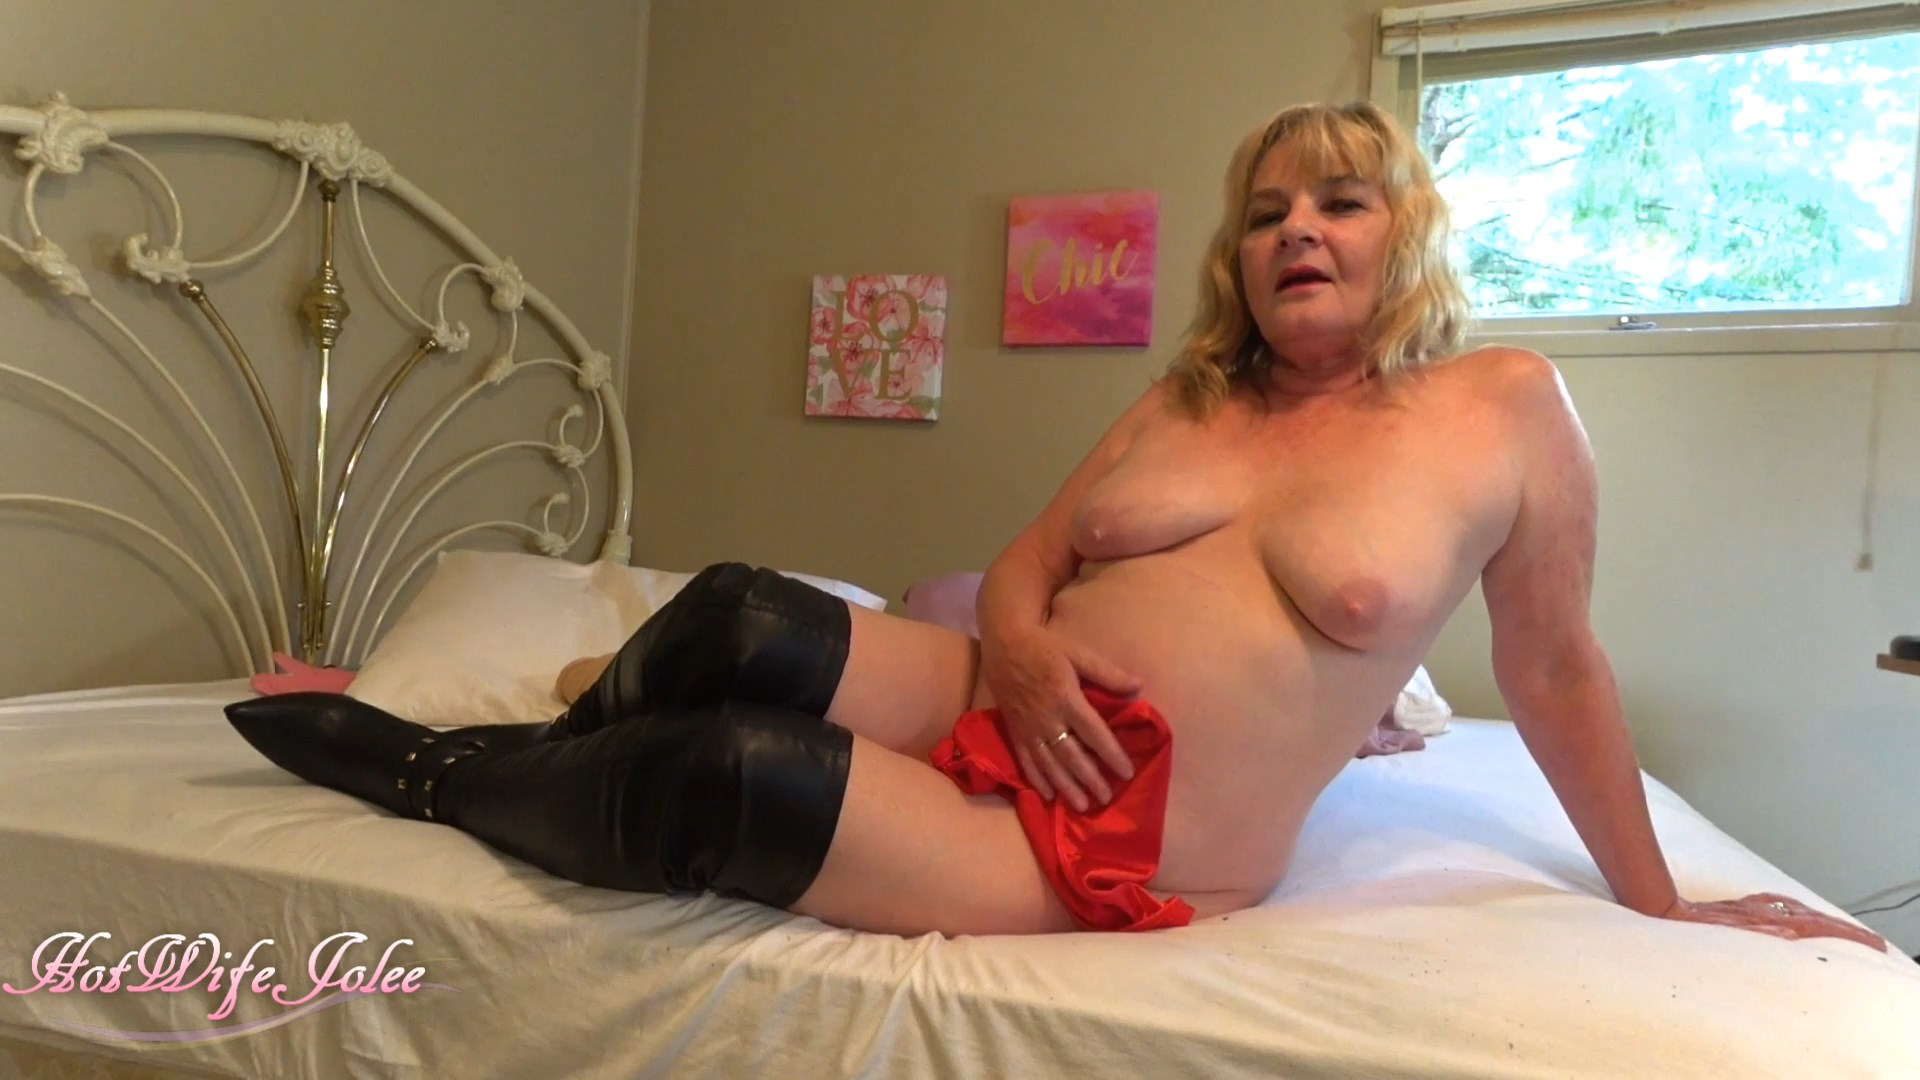 Hot Wife Jolee - Mom dominates her boy dressed in her sex